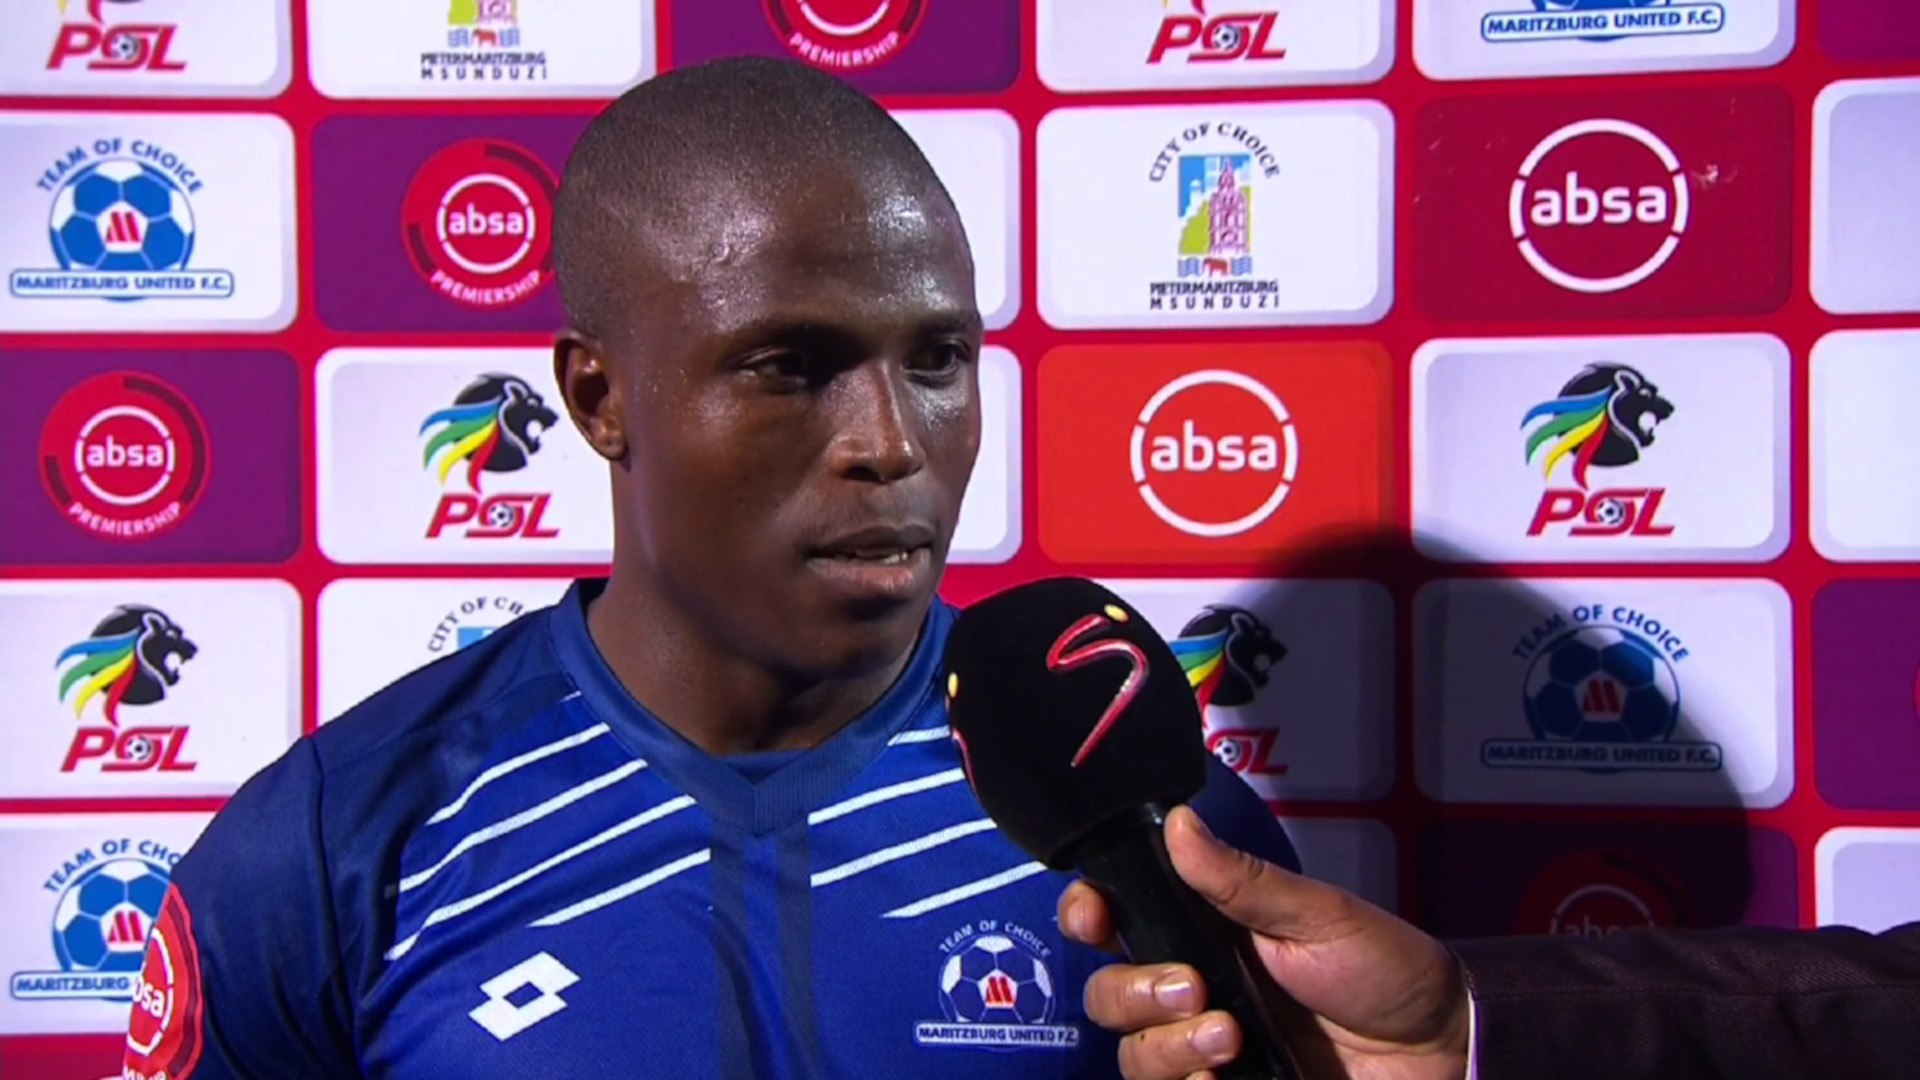 Absa Premiership | Maritzburg United v Chippa United | Post-match interview with Mxolisi Kunene